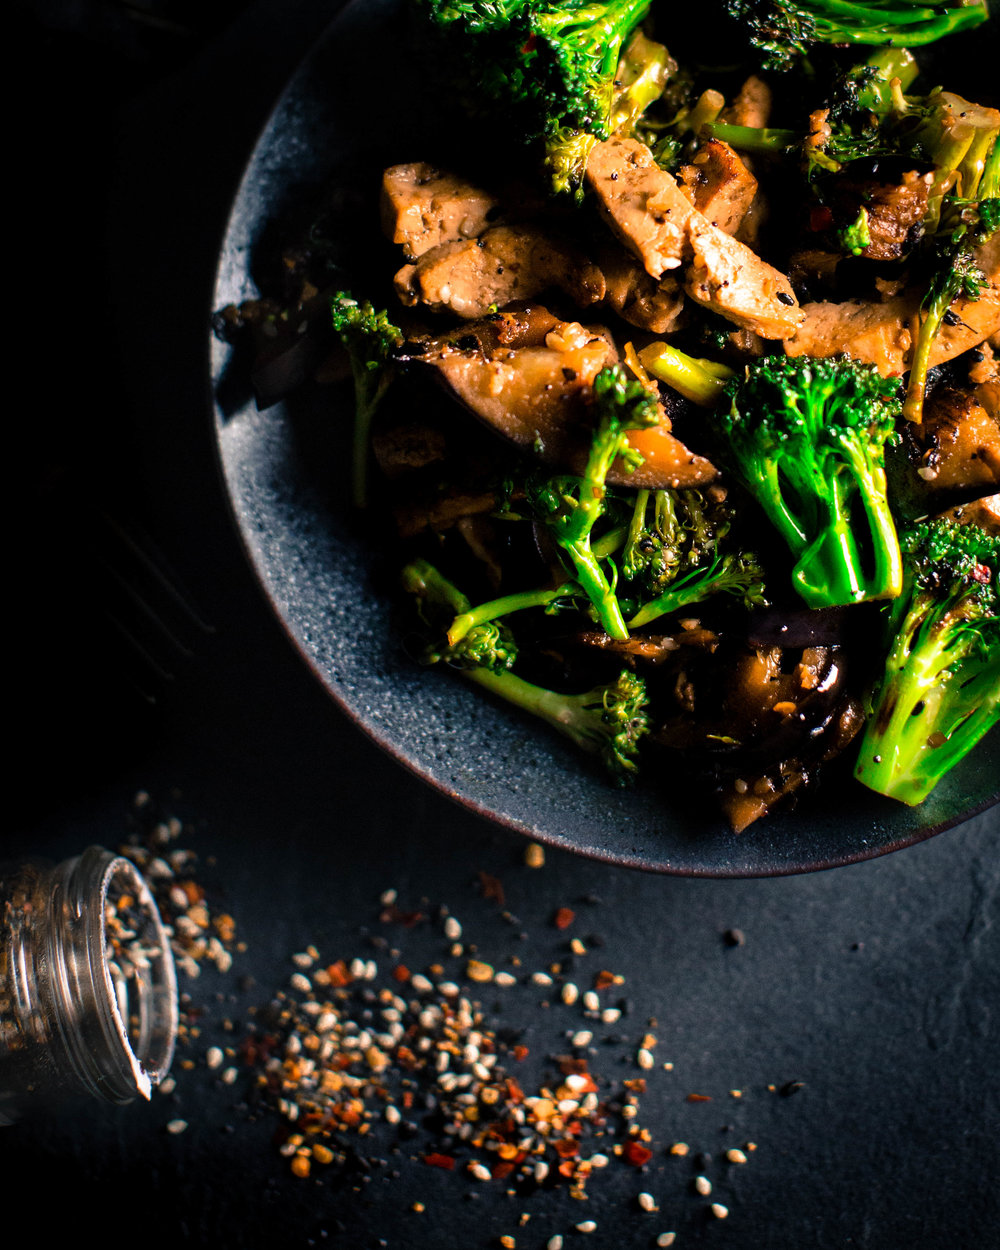 Broccoli stirfry7.jpg